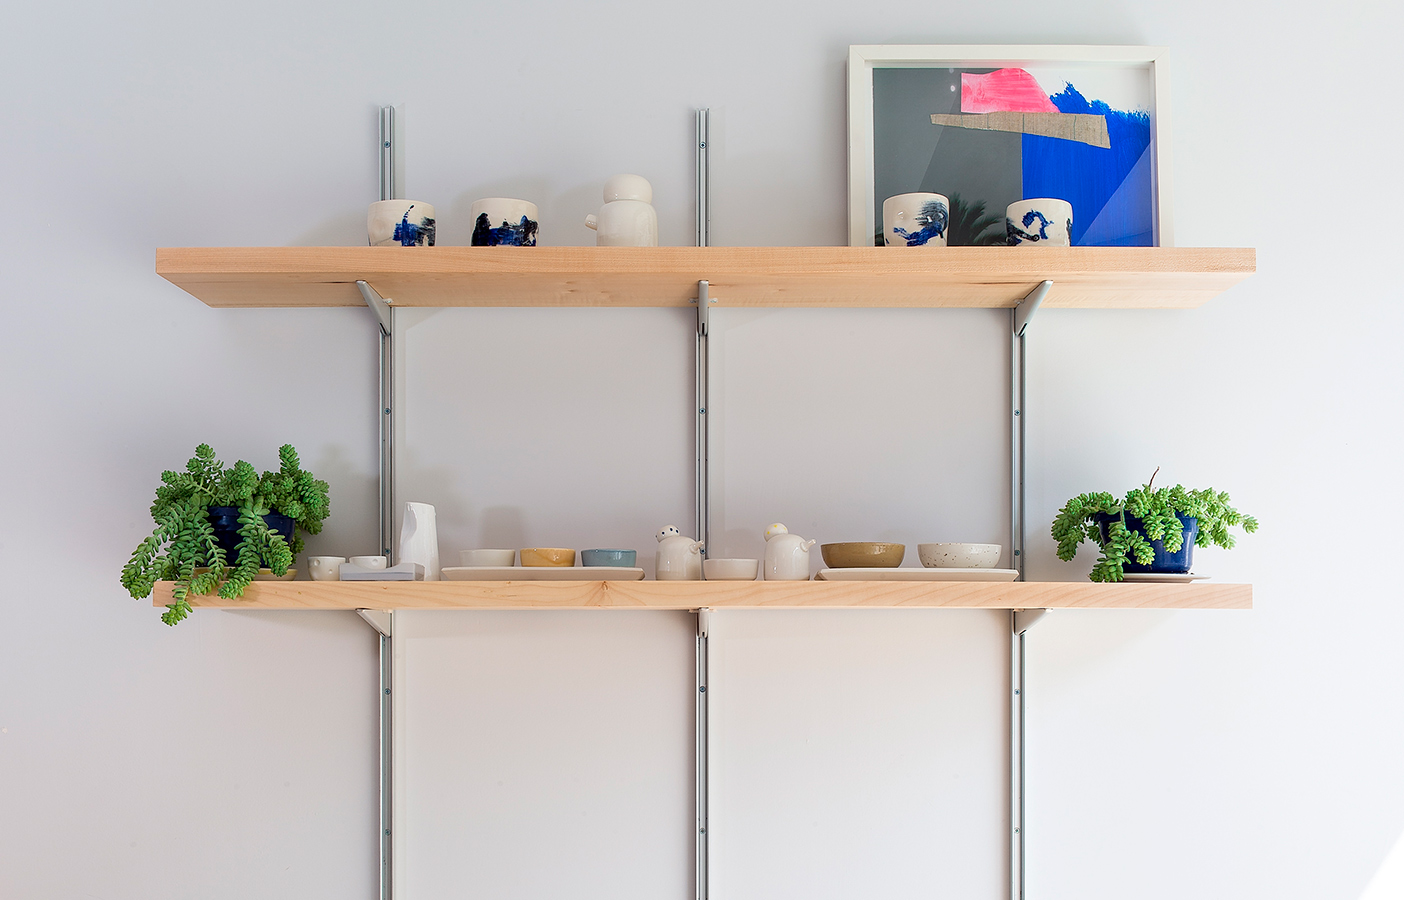 Aldworth James & Bond | Jidori Dalston - shelving